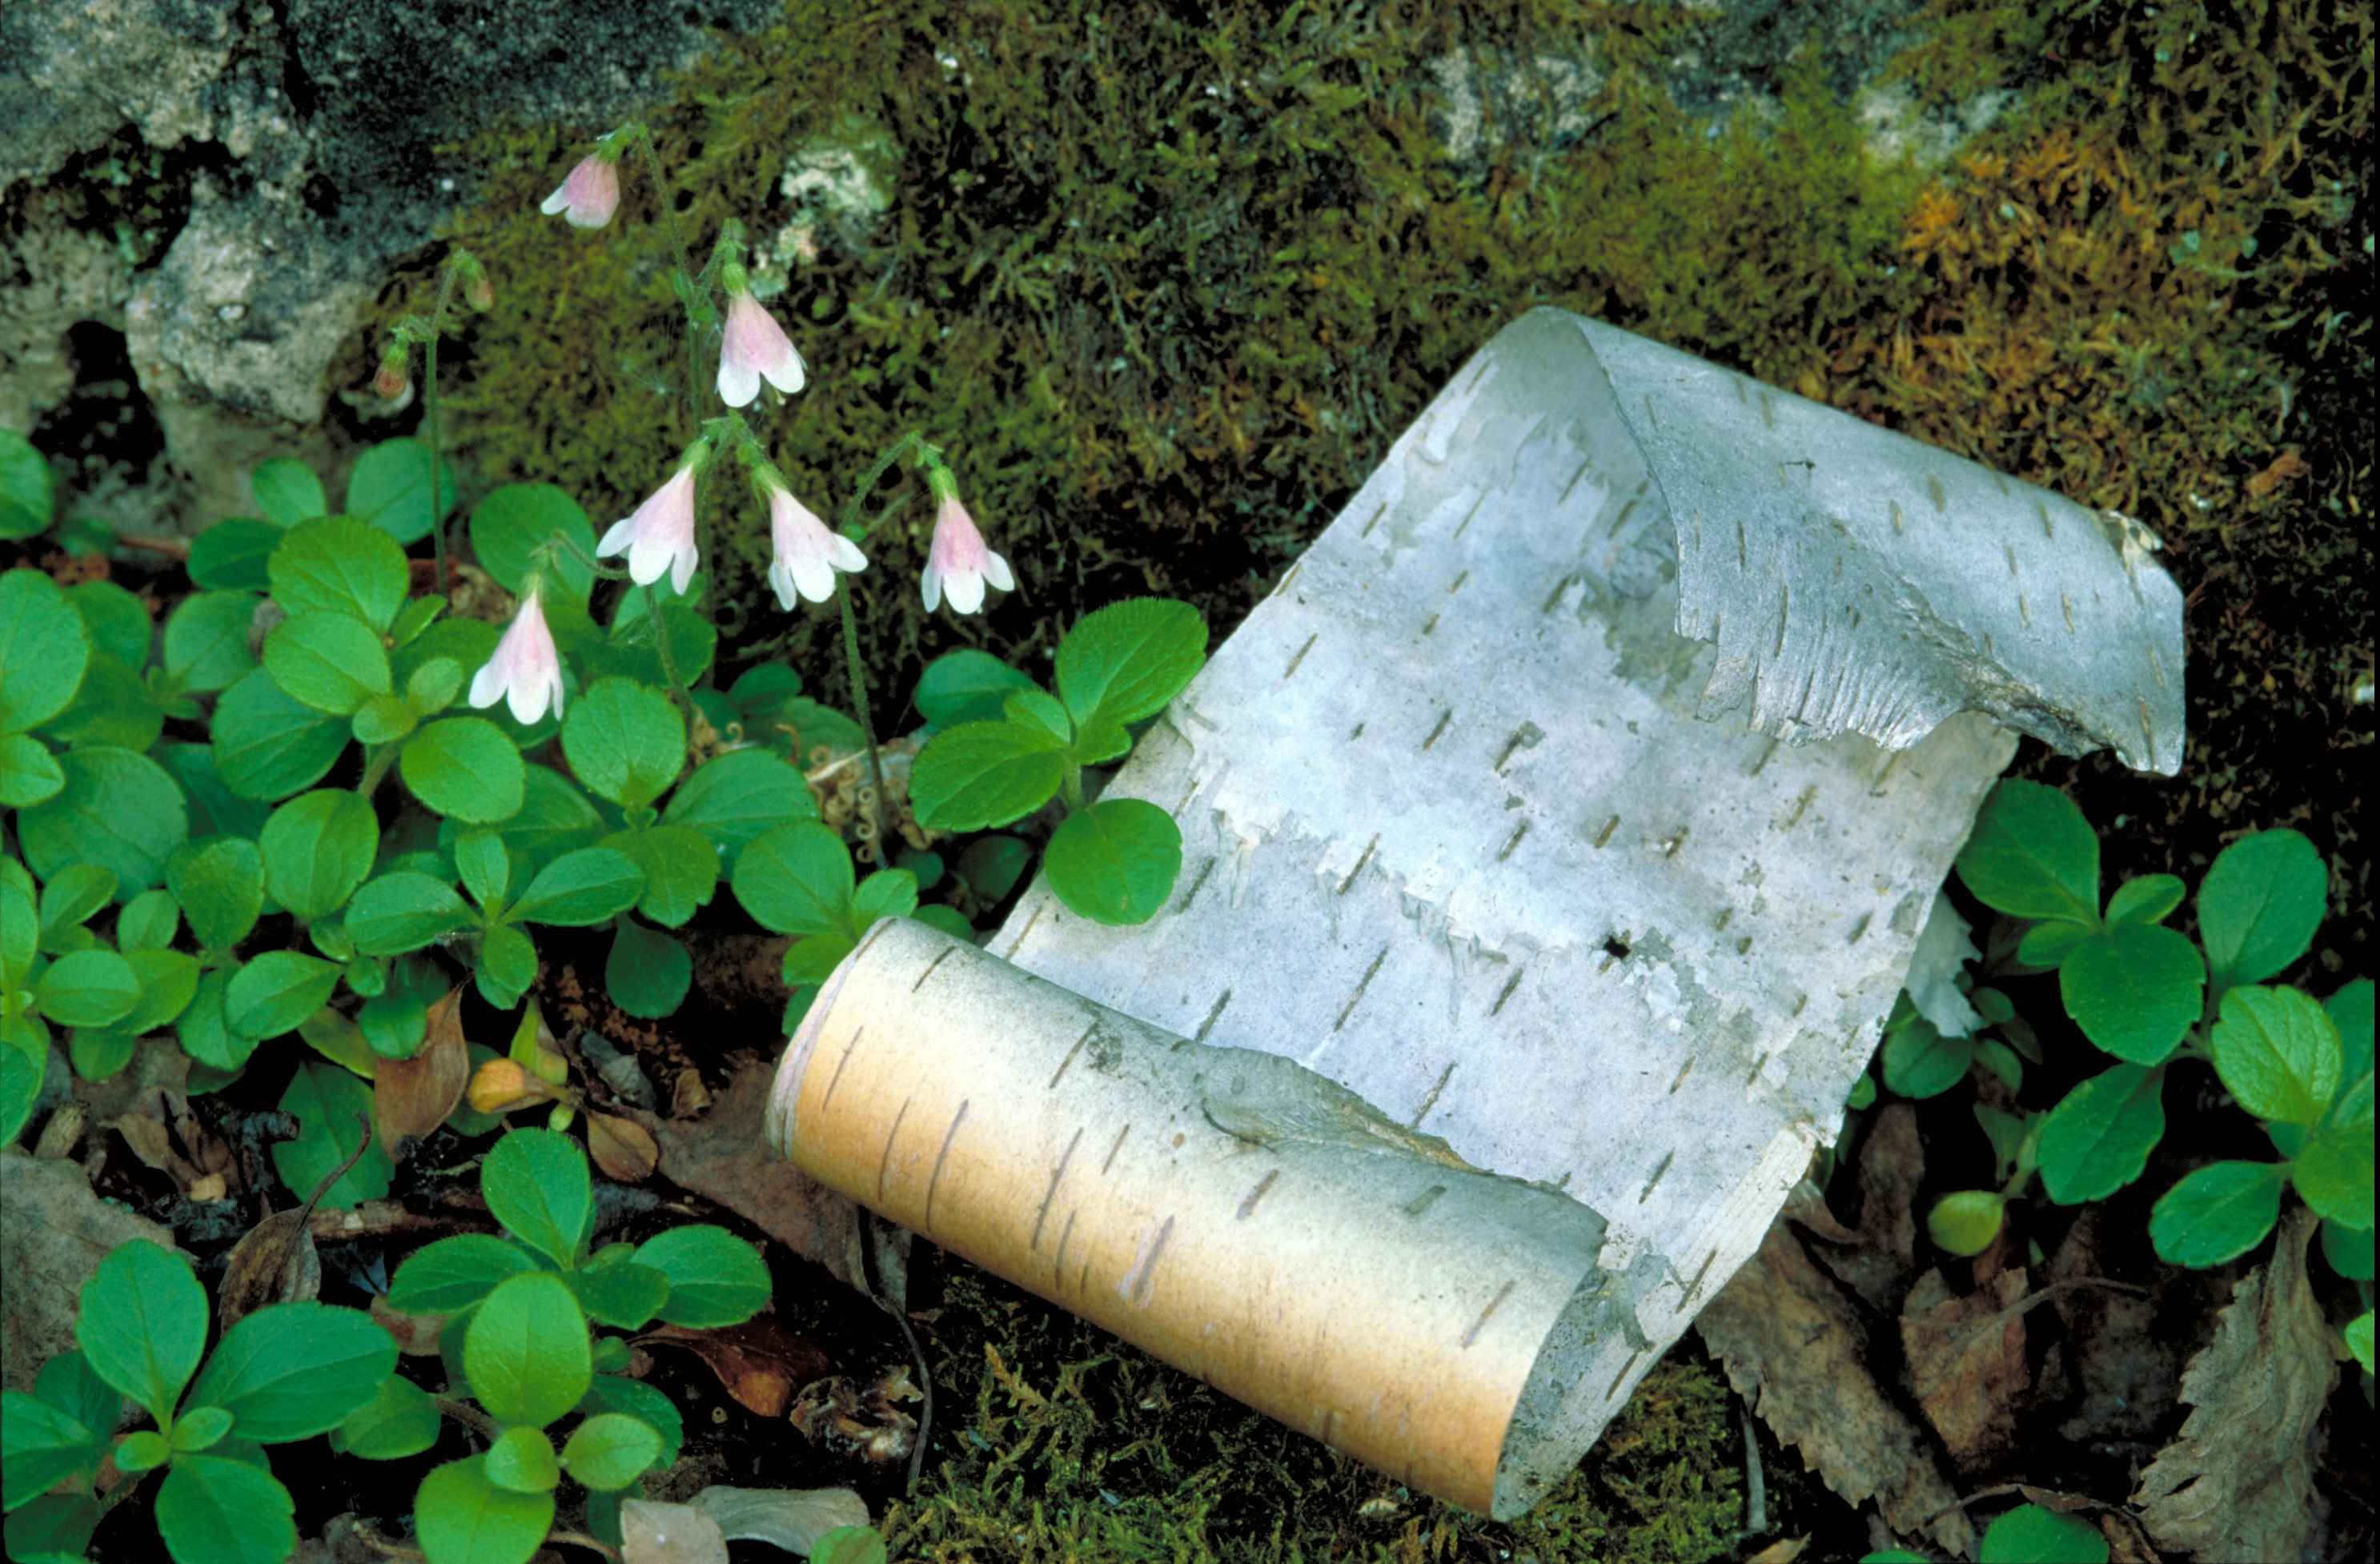 Tiny Nodding Pink And White Blossoms Growing In Moss And